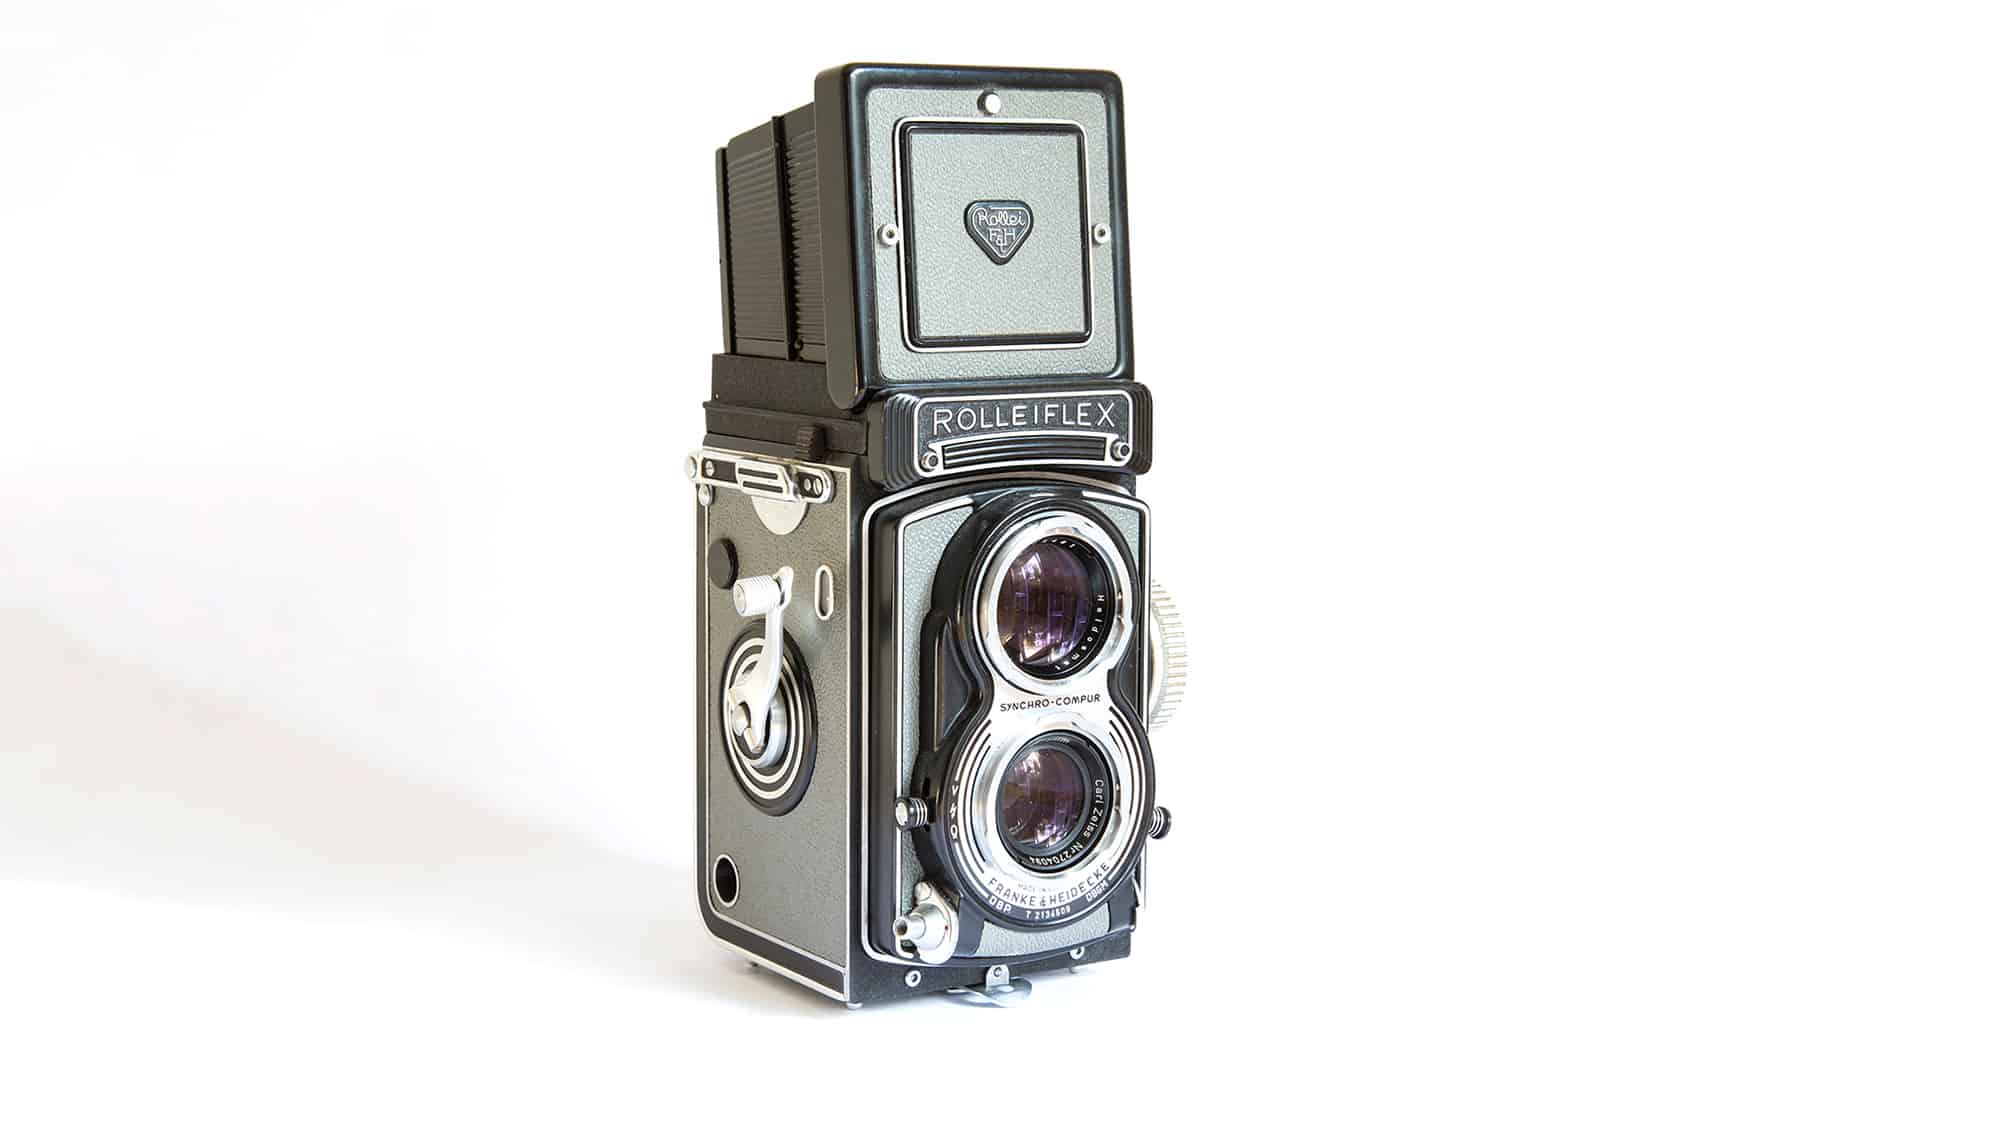 Rolleiflex T with a built in 75mm f3.5 Tessar lens. This twin lens reflex camera was built between 1958 - 1976.